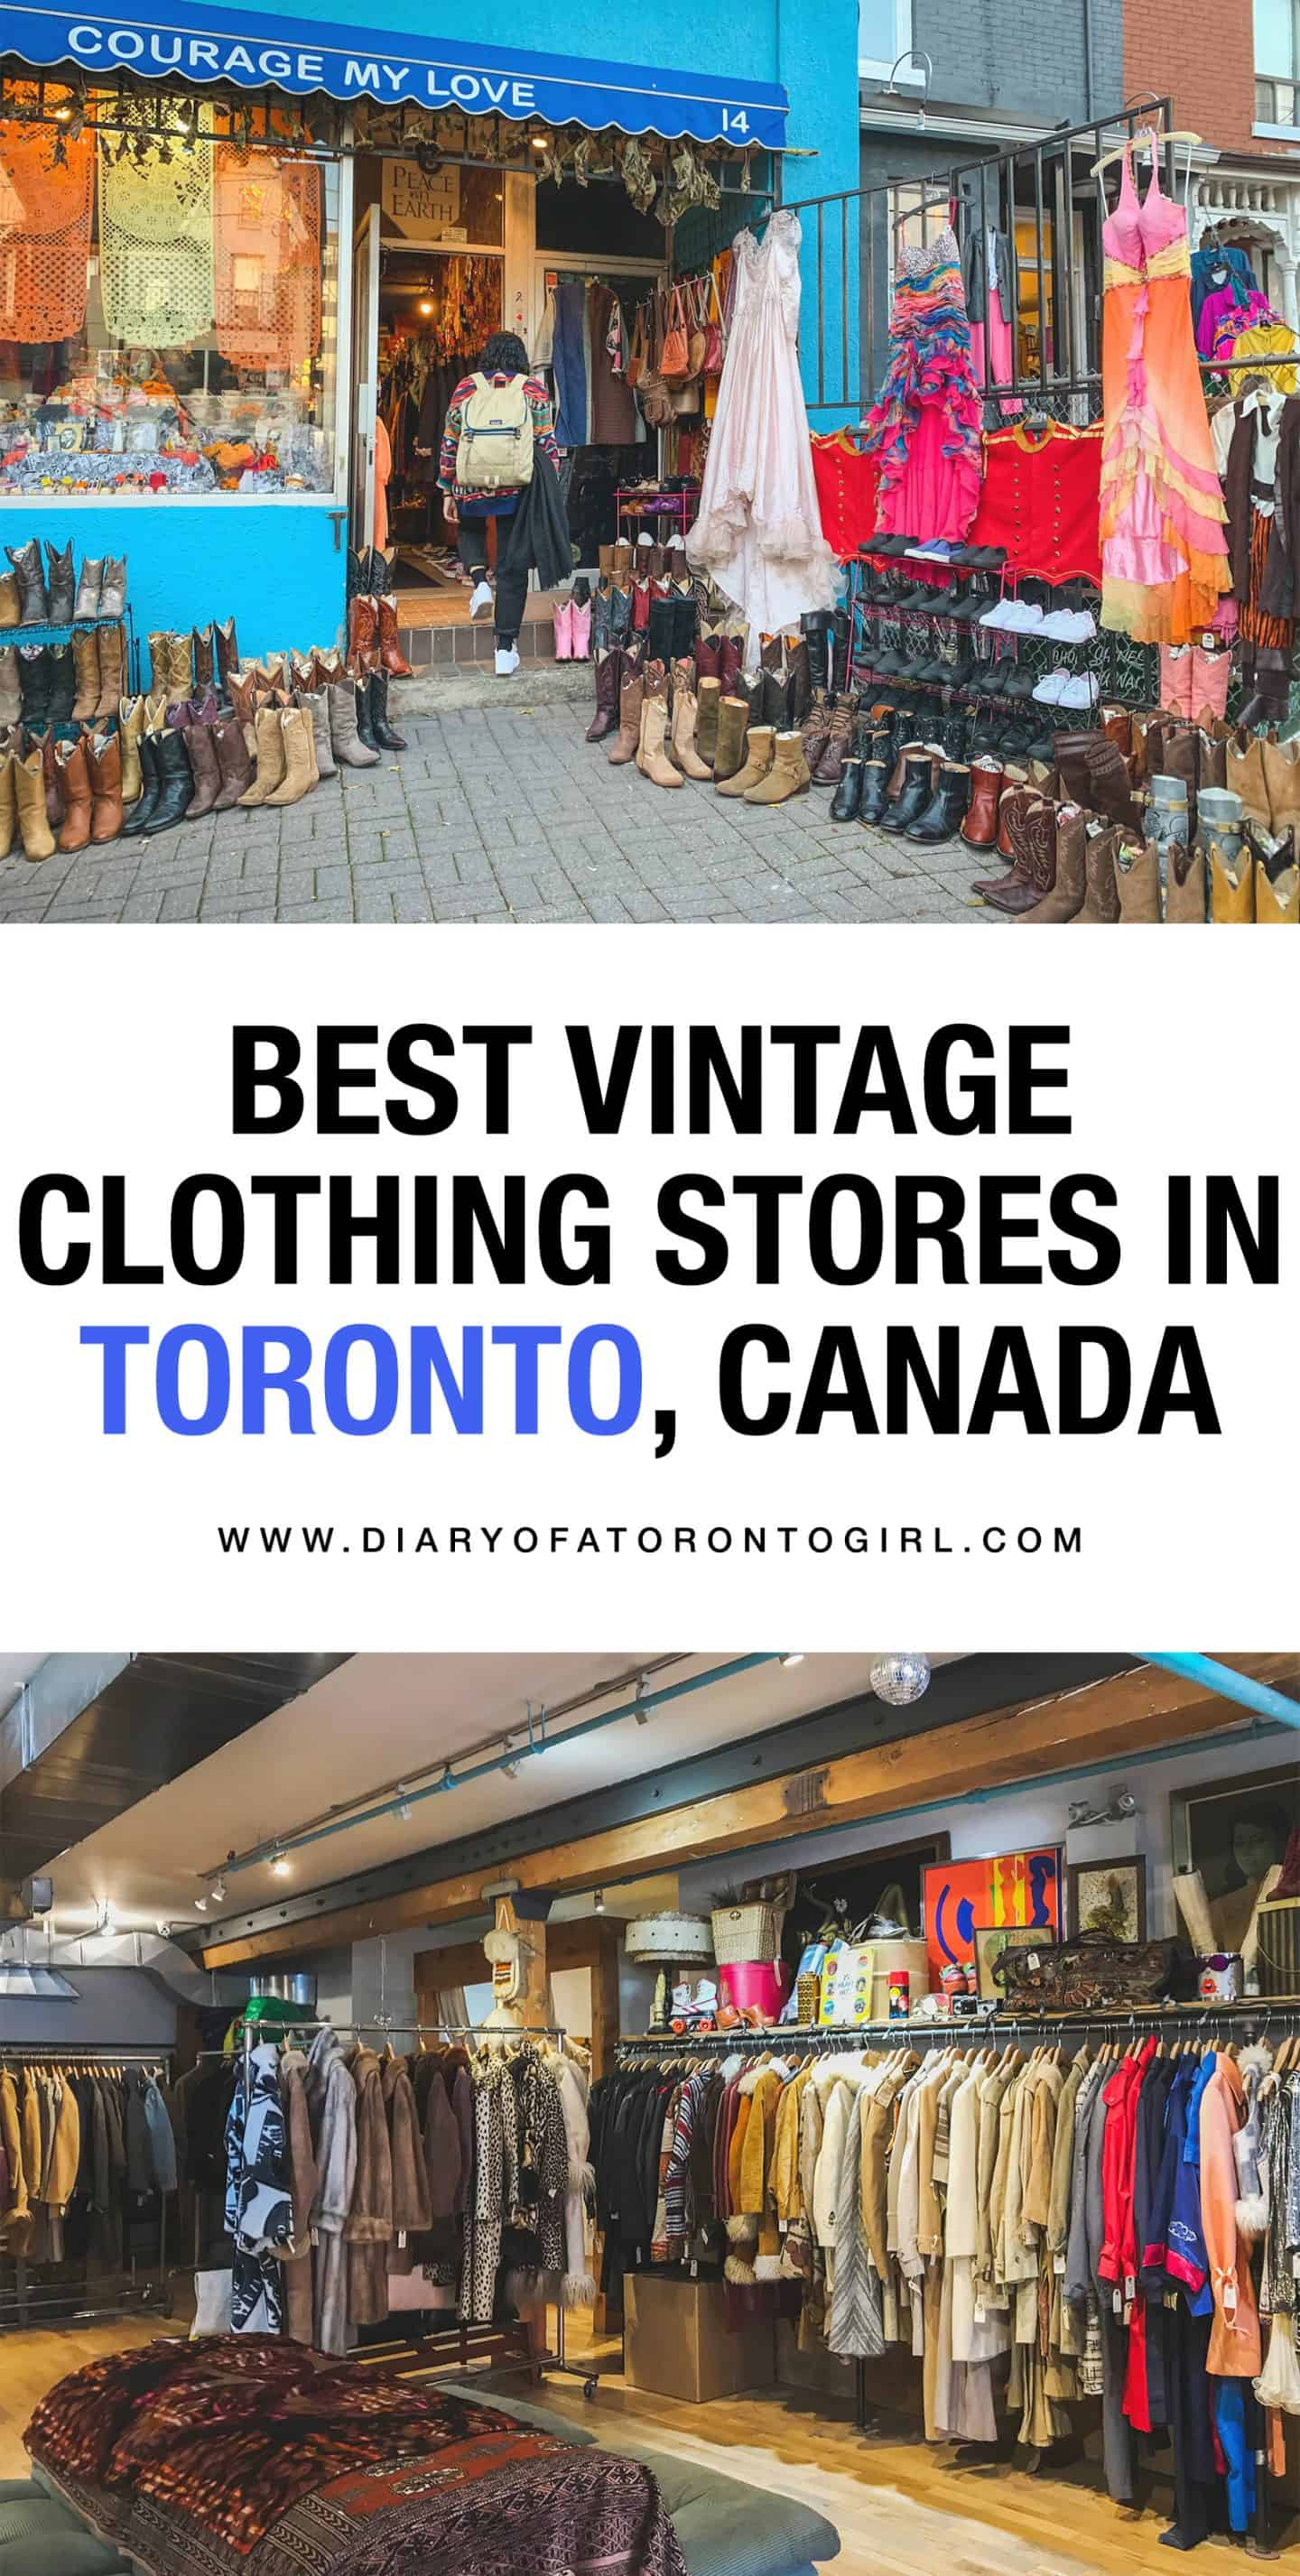 The best Toronto vintage, consignment, and thrift clothing stores to shop at. Toronto is a stylish city, and you'll find tons of amazing pieces at these local gems!